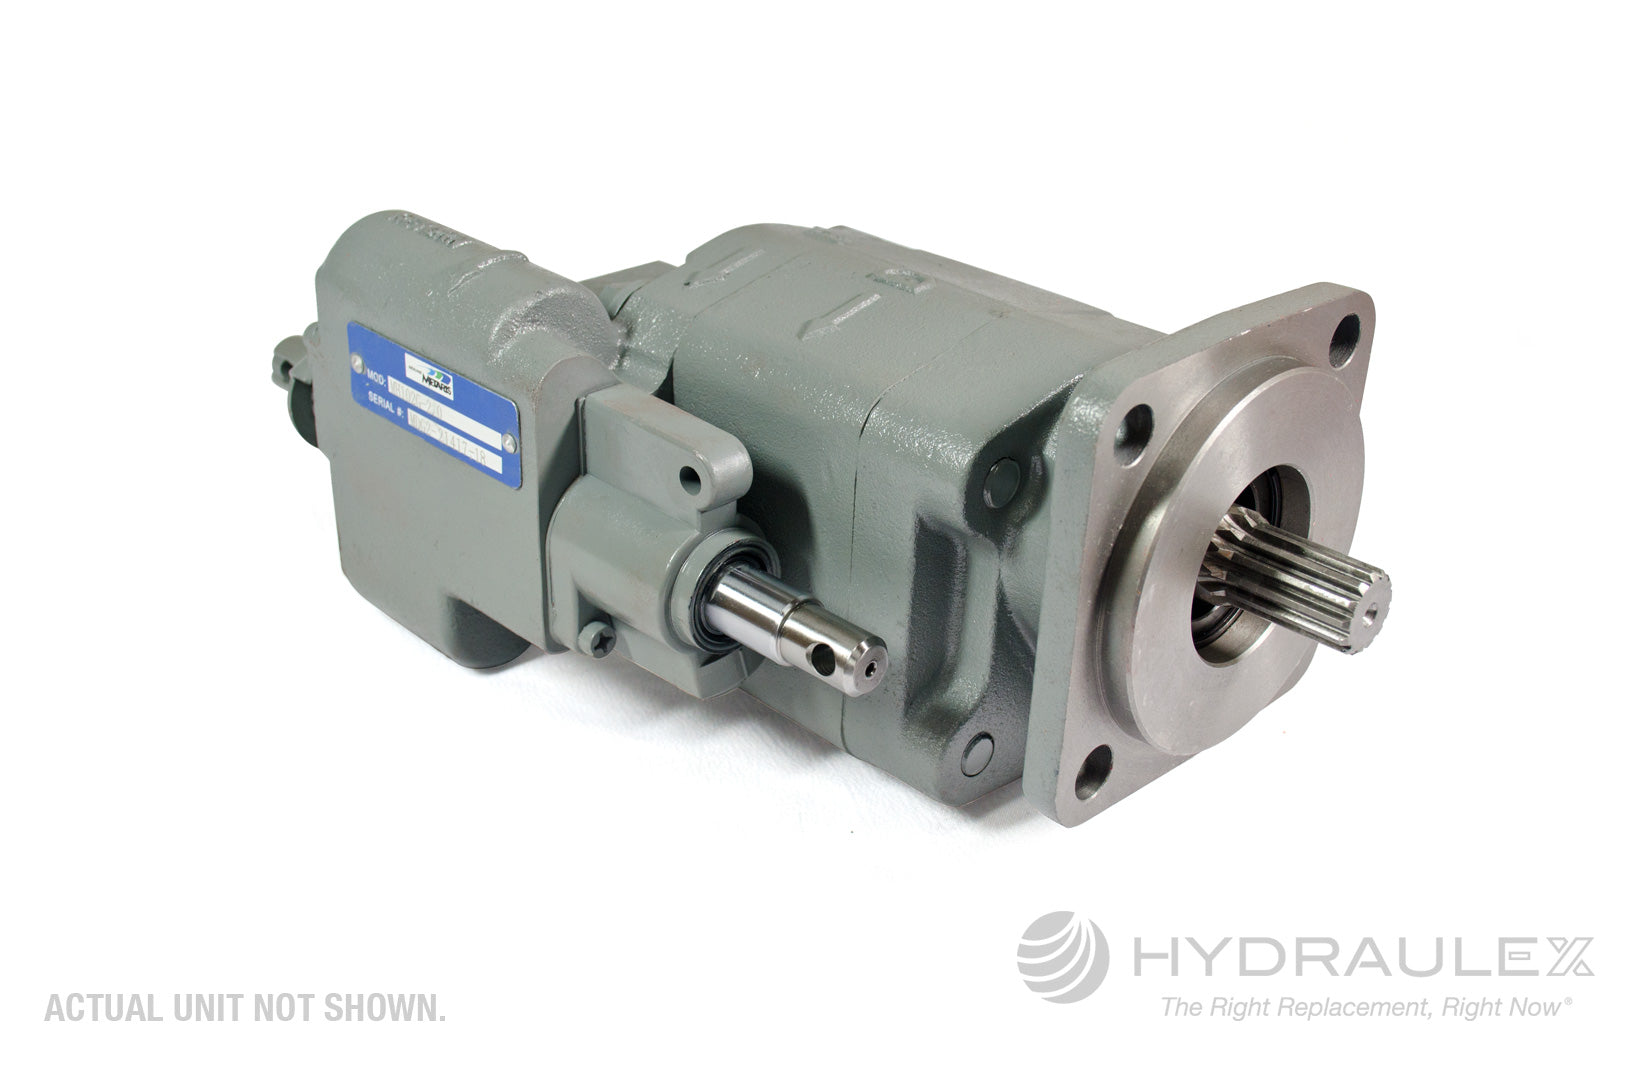 Metaris MHG102 Direct Mount Dump Pump